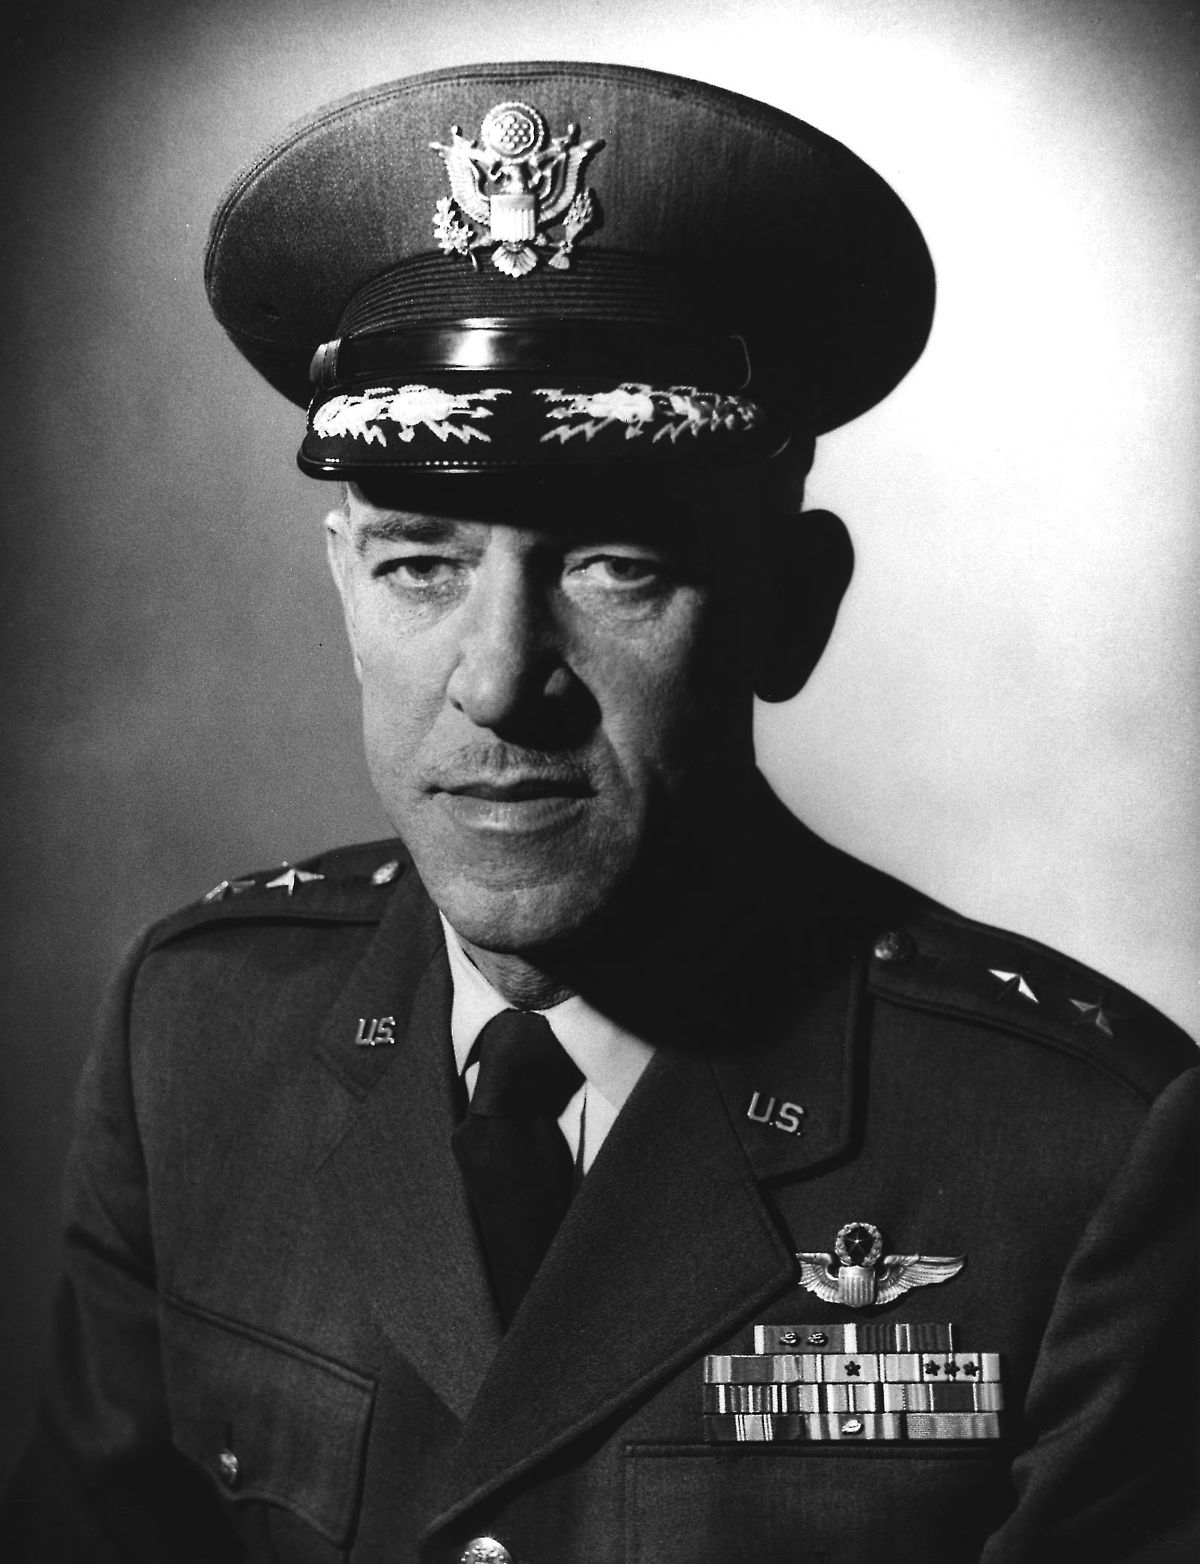 Air Force Graduation >> Kenneth P. Bergquist (United States Air Force) - Wikipedia